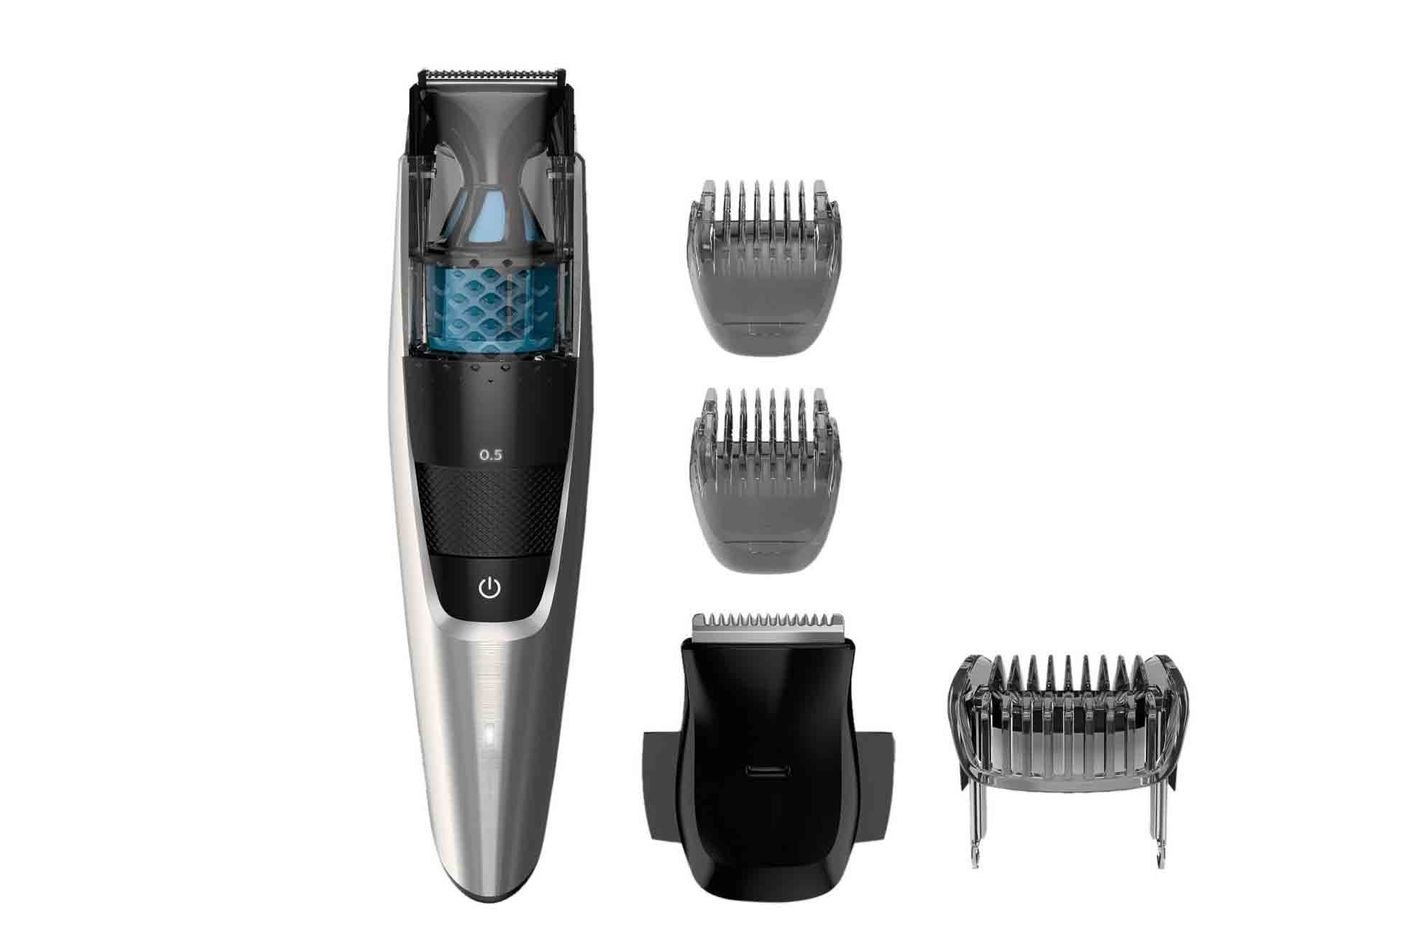 Philips Norelco Beard Trimmer Series 7200 at Amazon